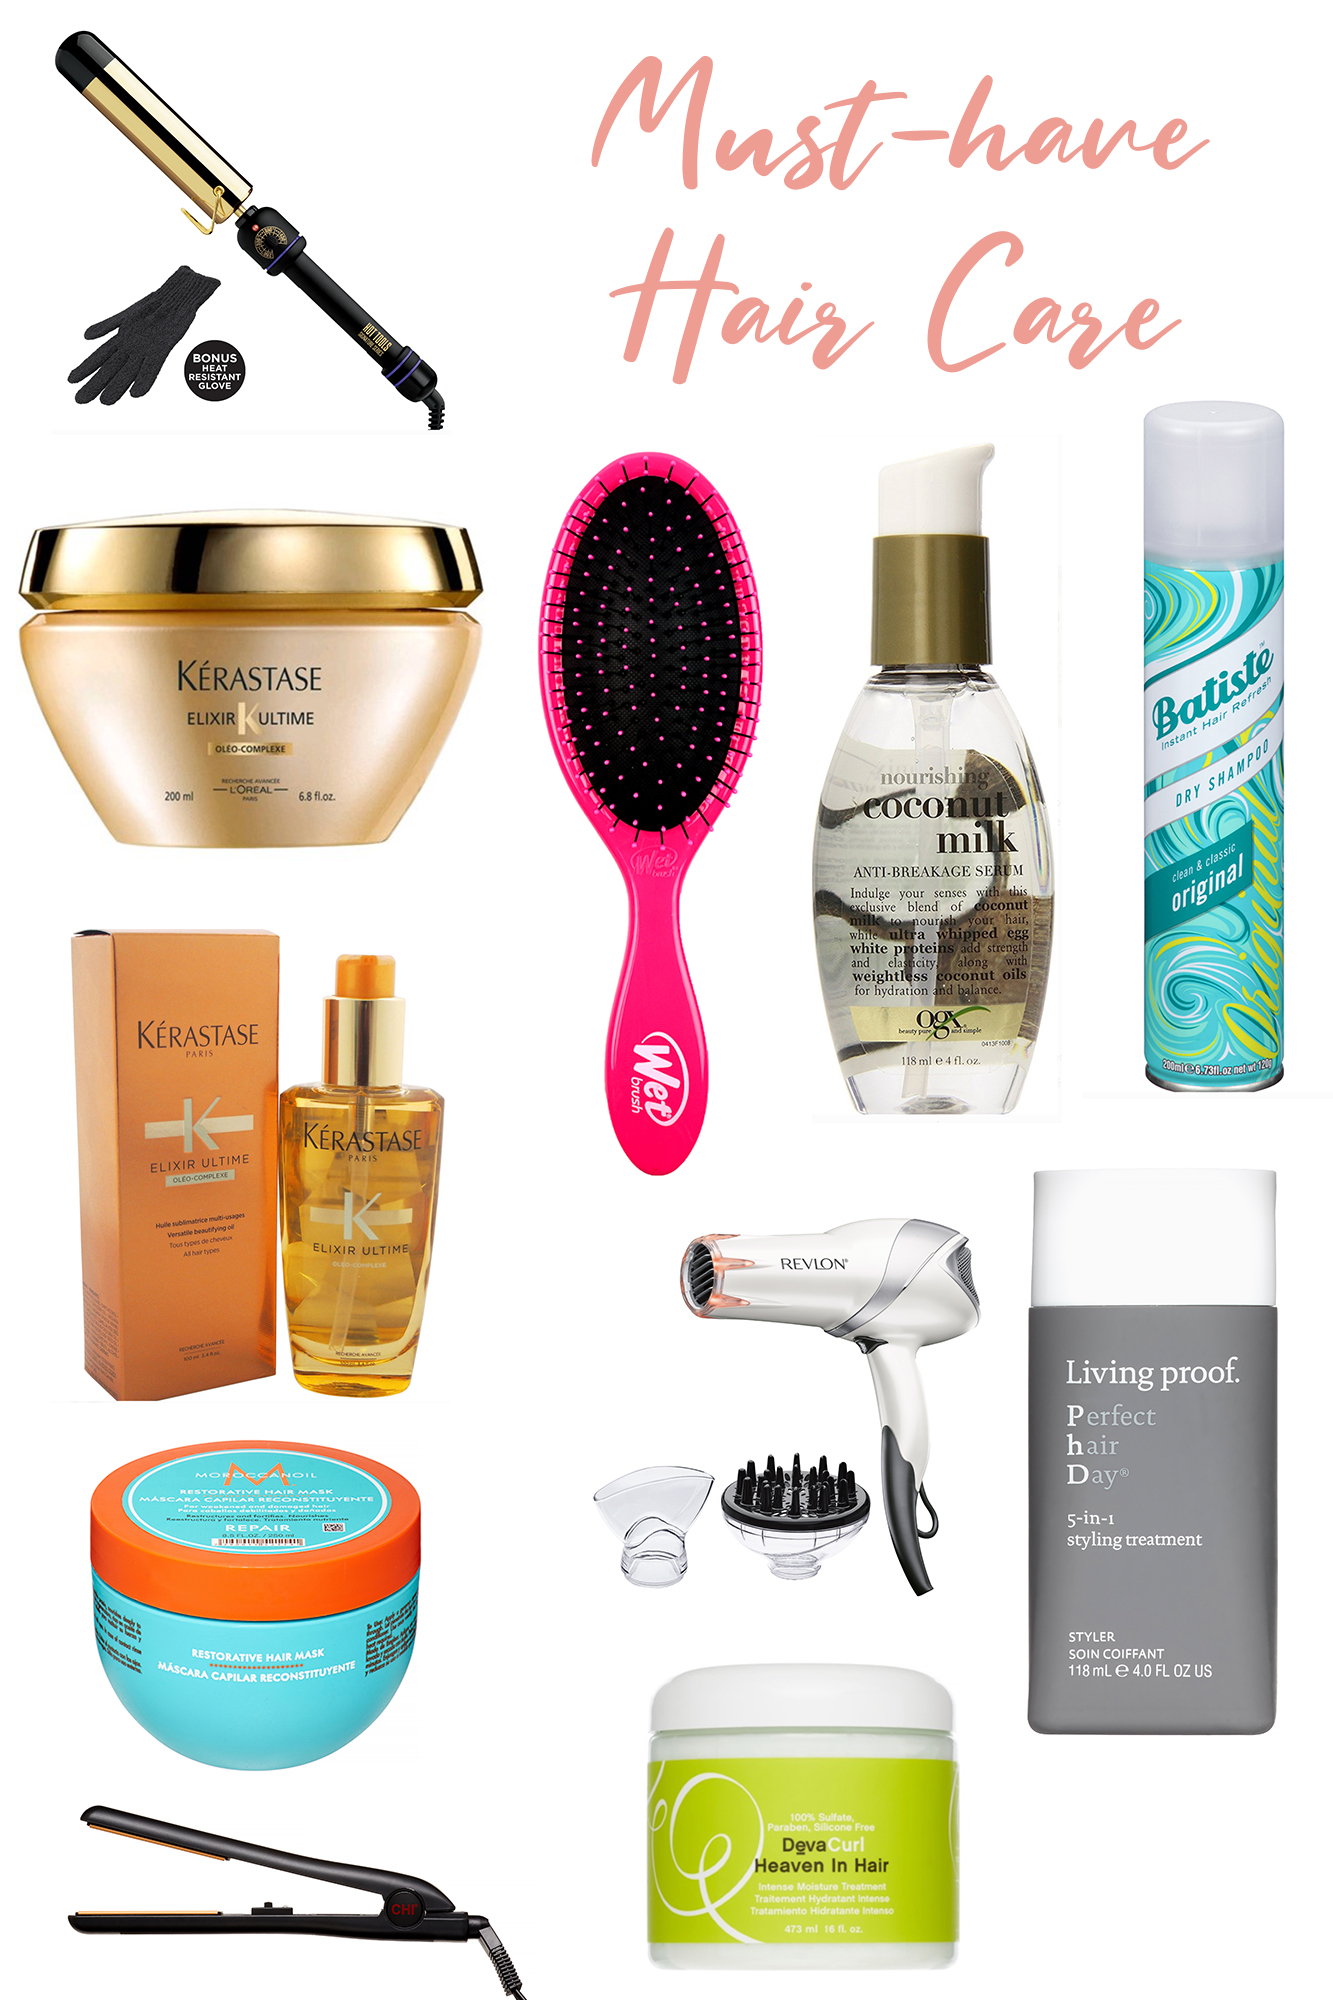 My Hair Care Must-Haves - Best of Beauty Products. I'm obsessed with hair & how to keep it looking fresh and healthy.. all of these are my fave hair tools!